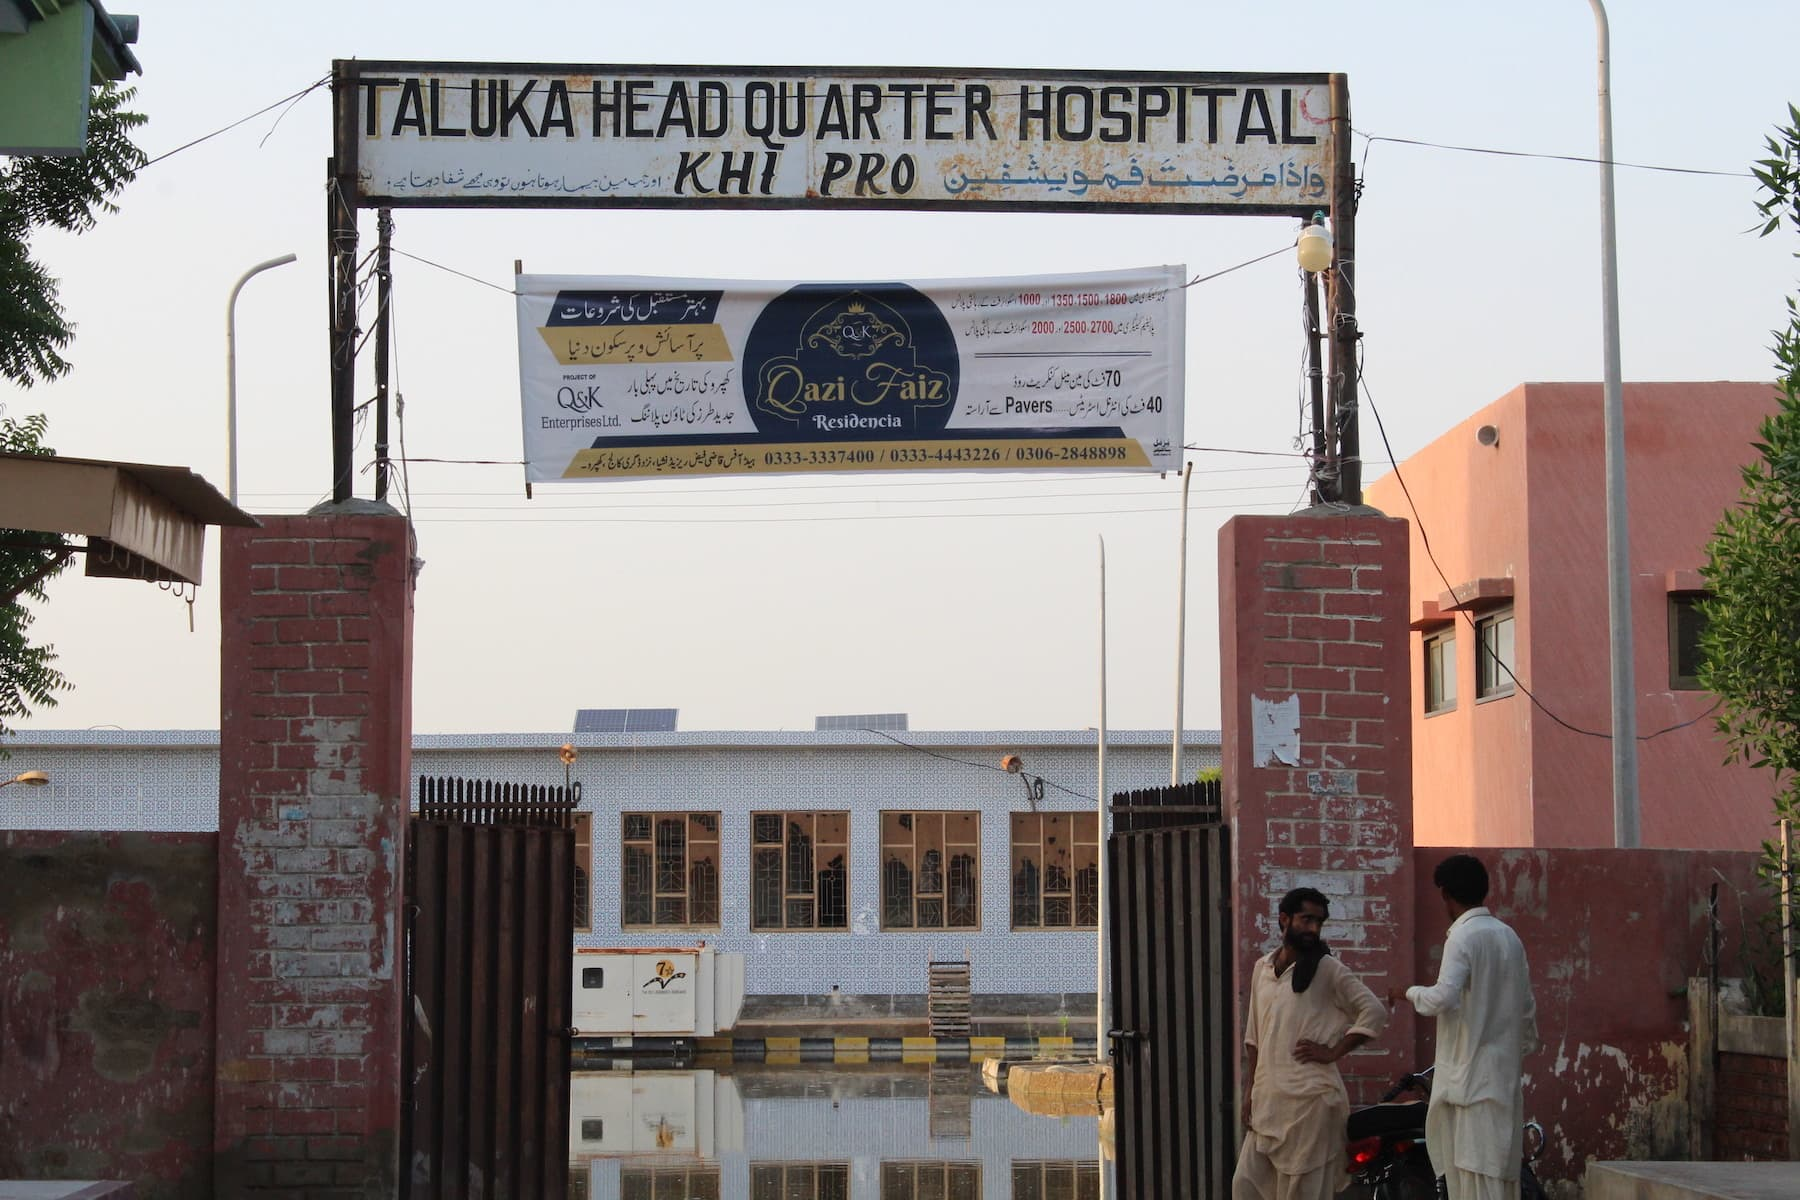 The Taluka Headquarter Hospital Khipro is flooded in ankle-deep water for the past 15 days. Attendants must carry the patients into the main building. — Photo by author